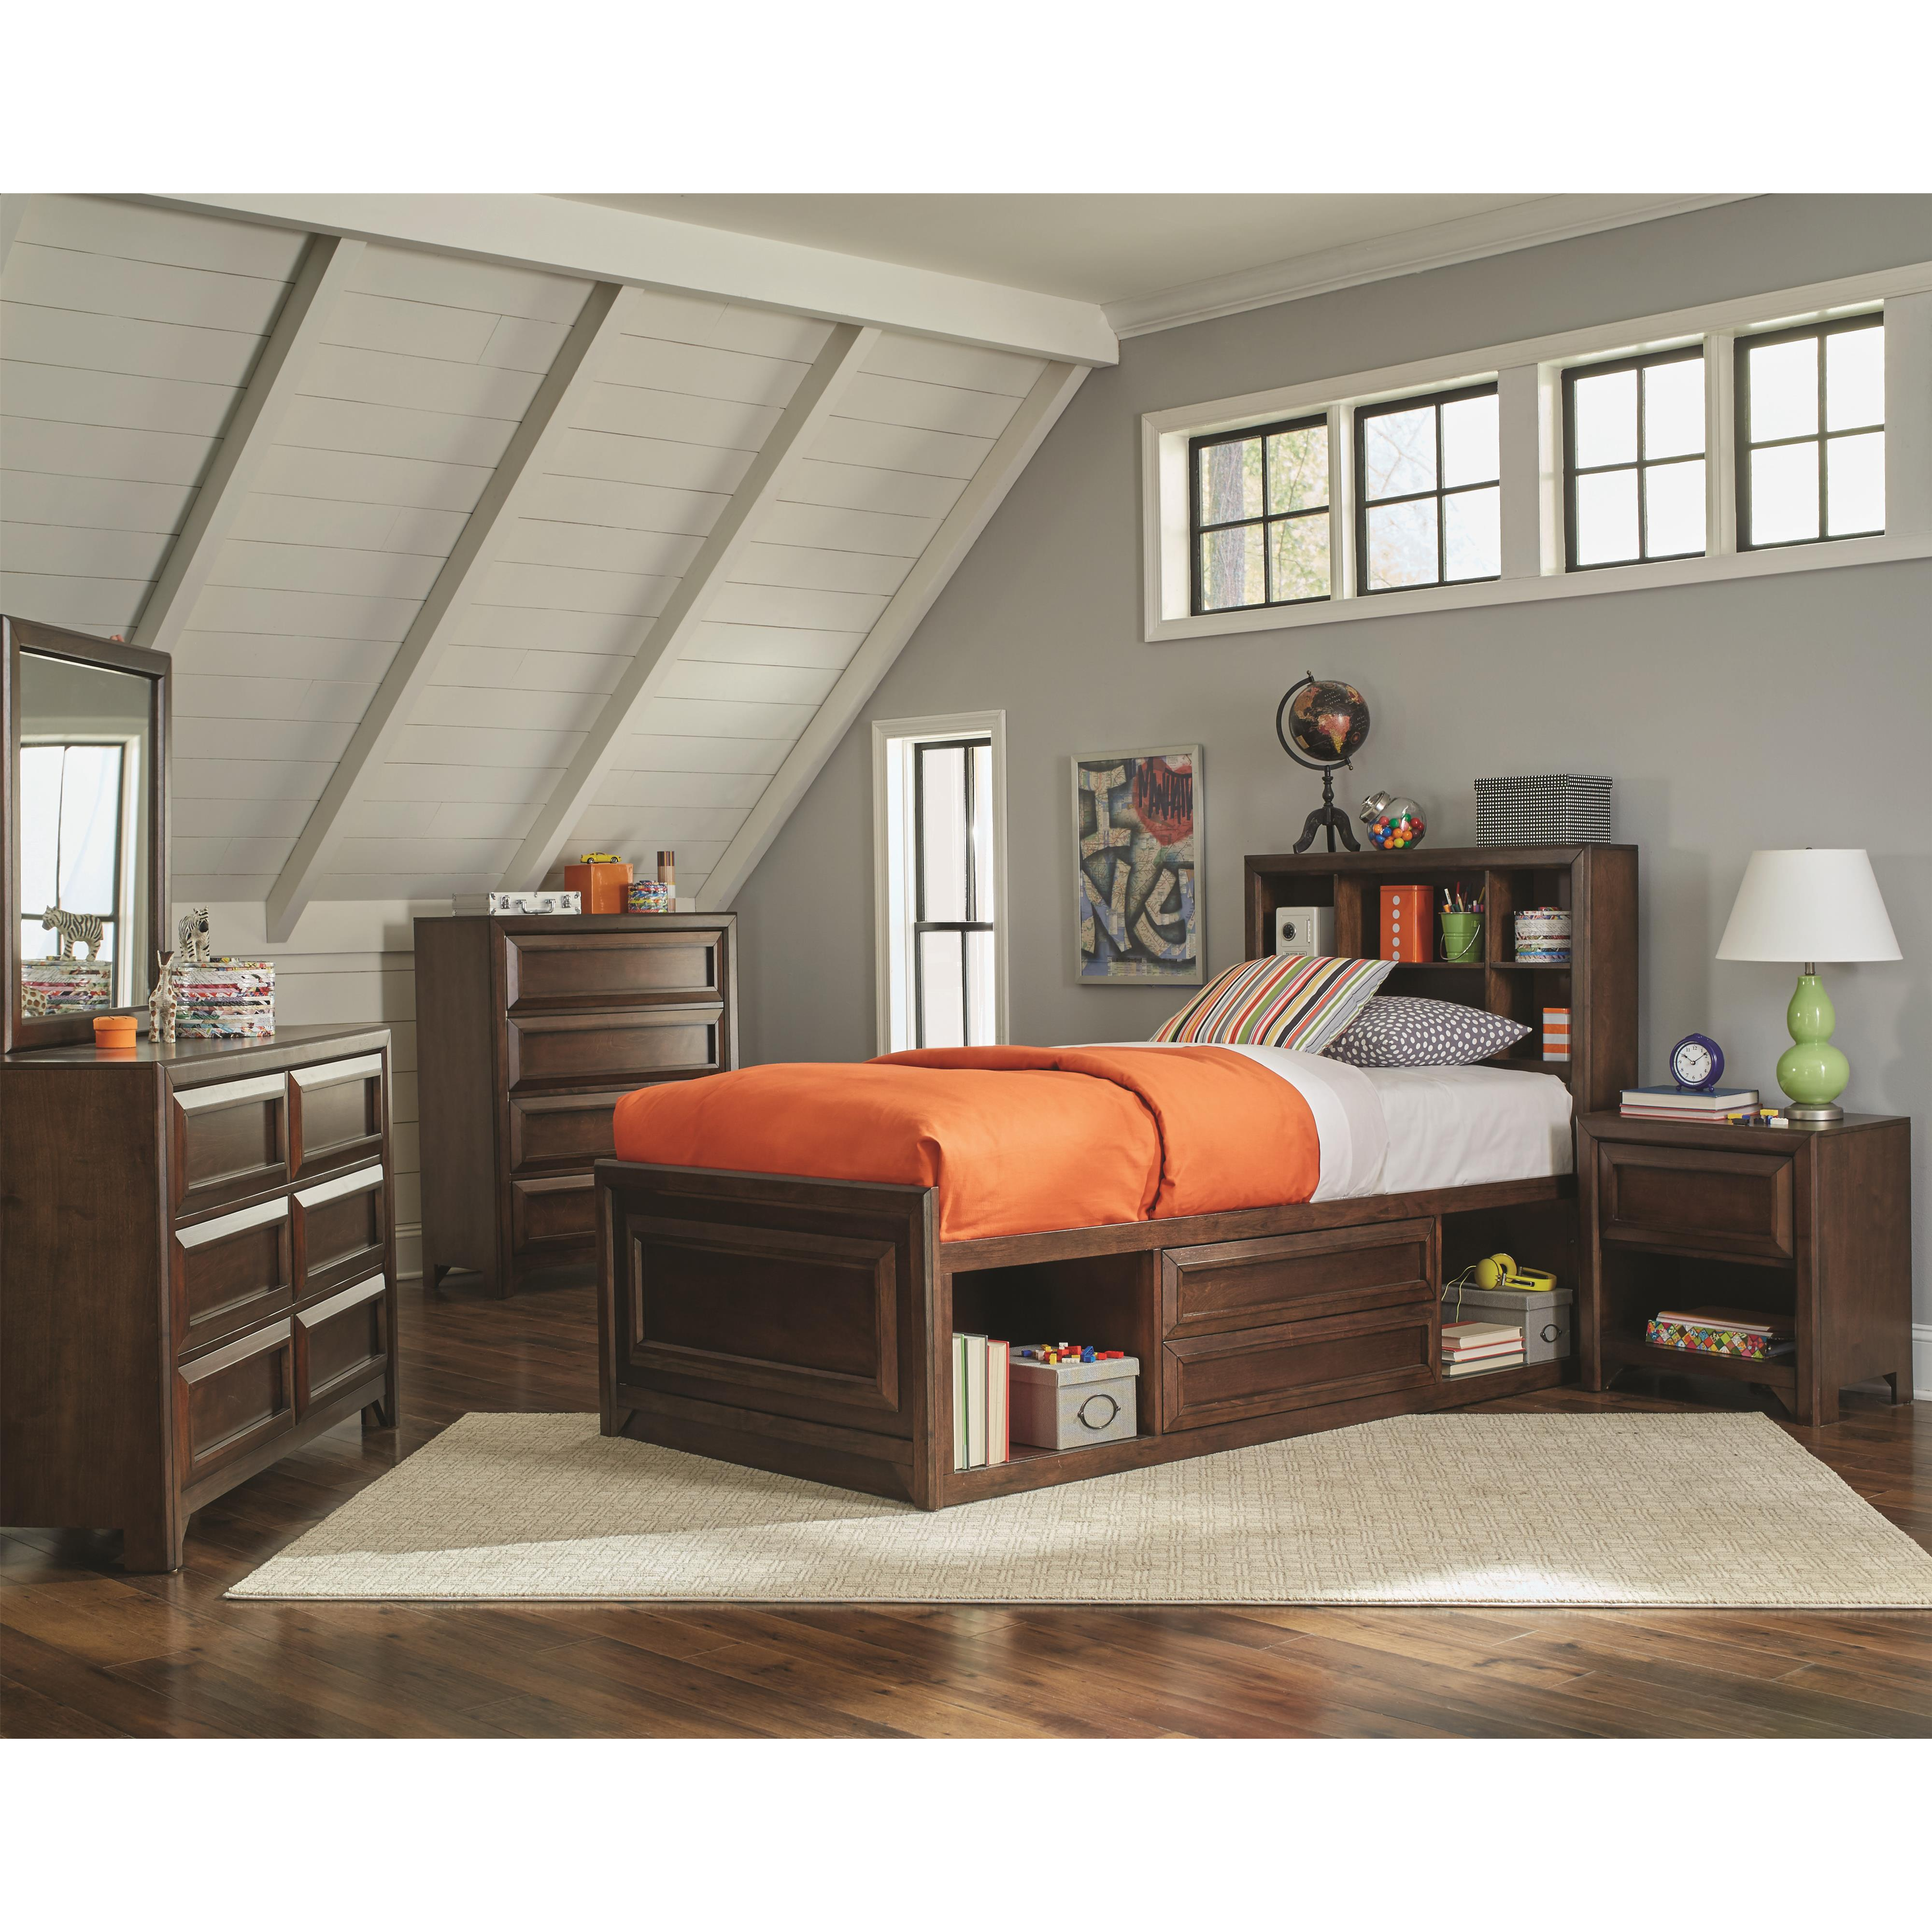 Dfw Direct Furniture: Coaster Greenough 400820T Twin Bed With Bookcase Storage